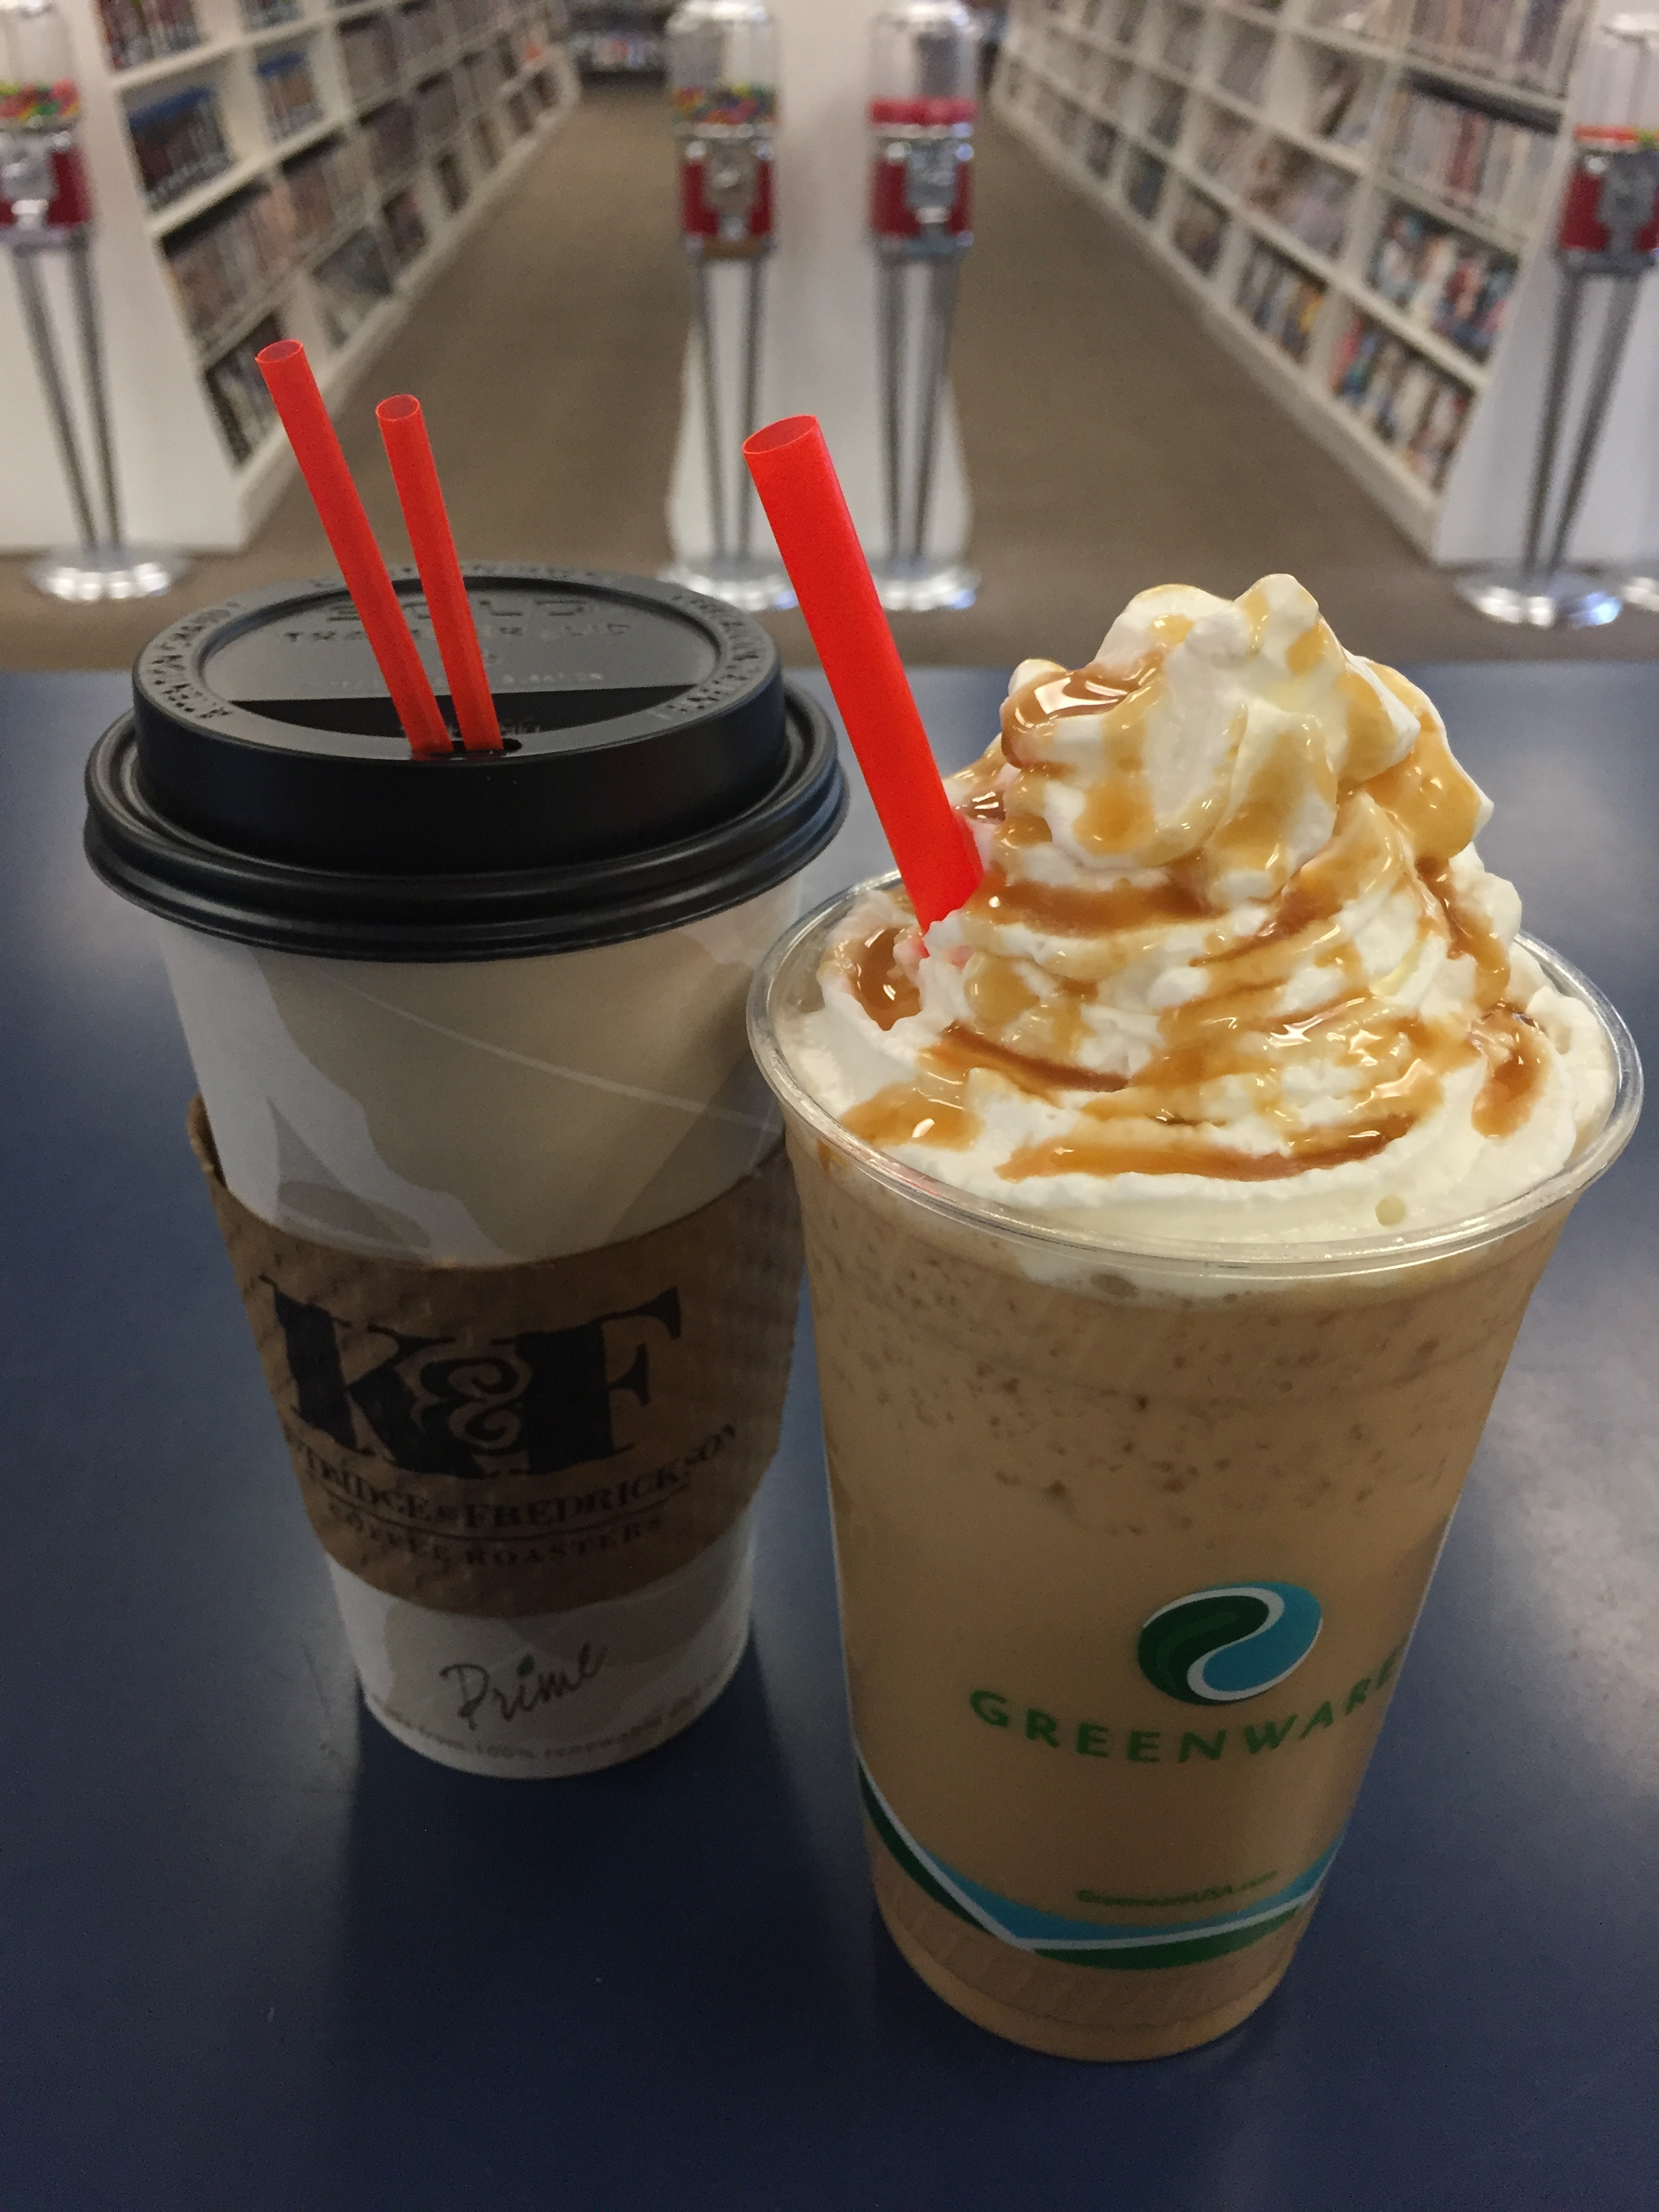 Great American Dream - Our signature drink and the perfect caramel treat for any day. Try it hot or iced!